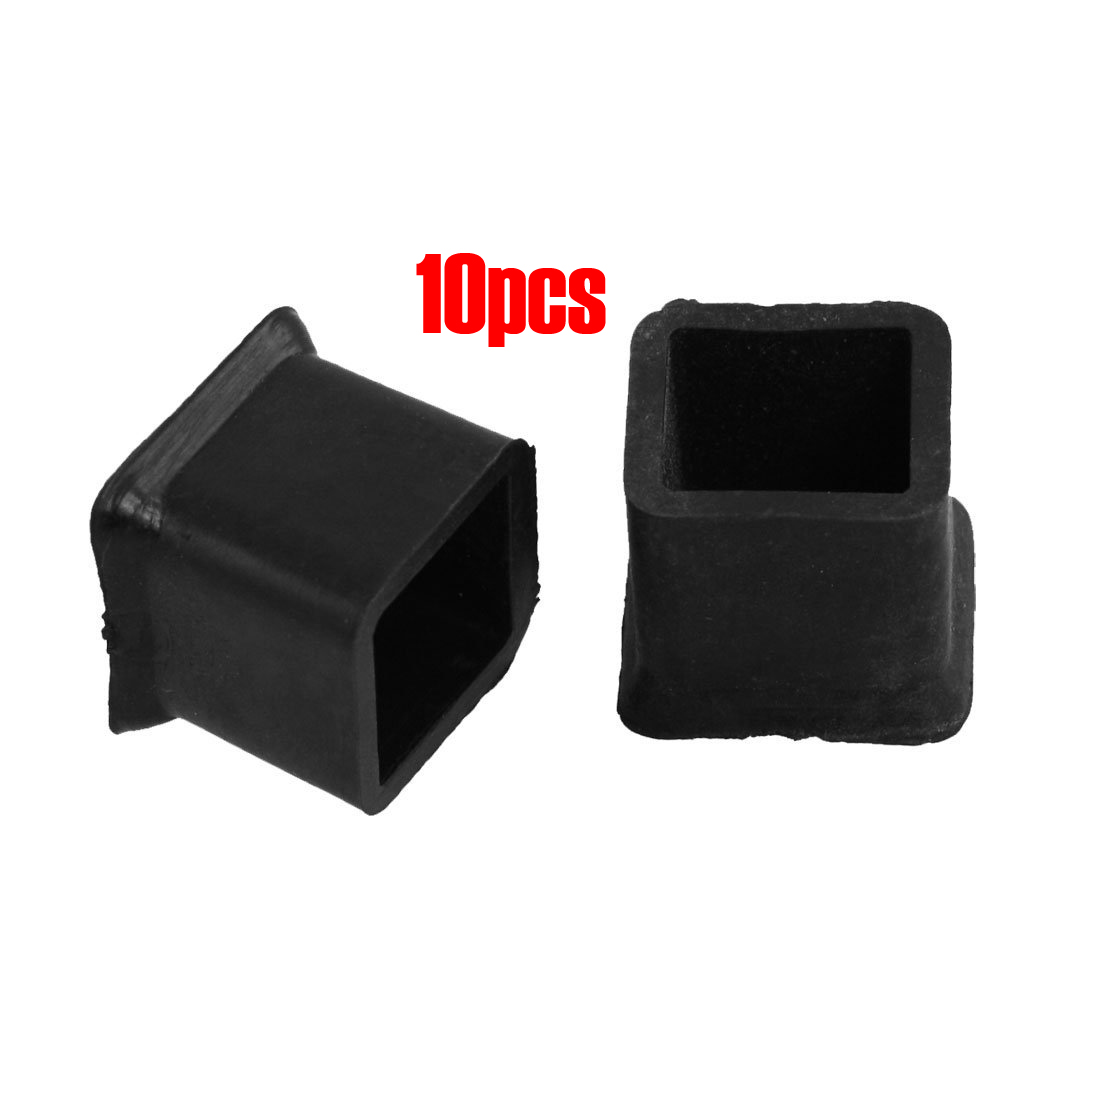 цены 10 Pcs Furniture Chair Table Leg Rubber Foot Covers Protectors 20mm x 20mm